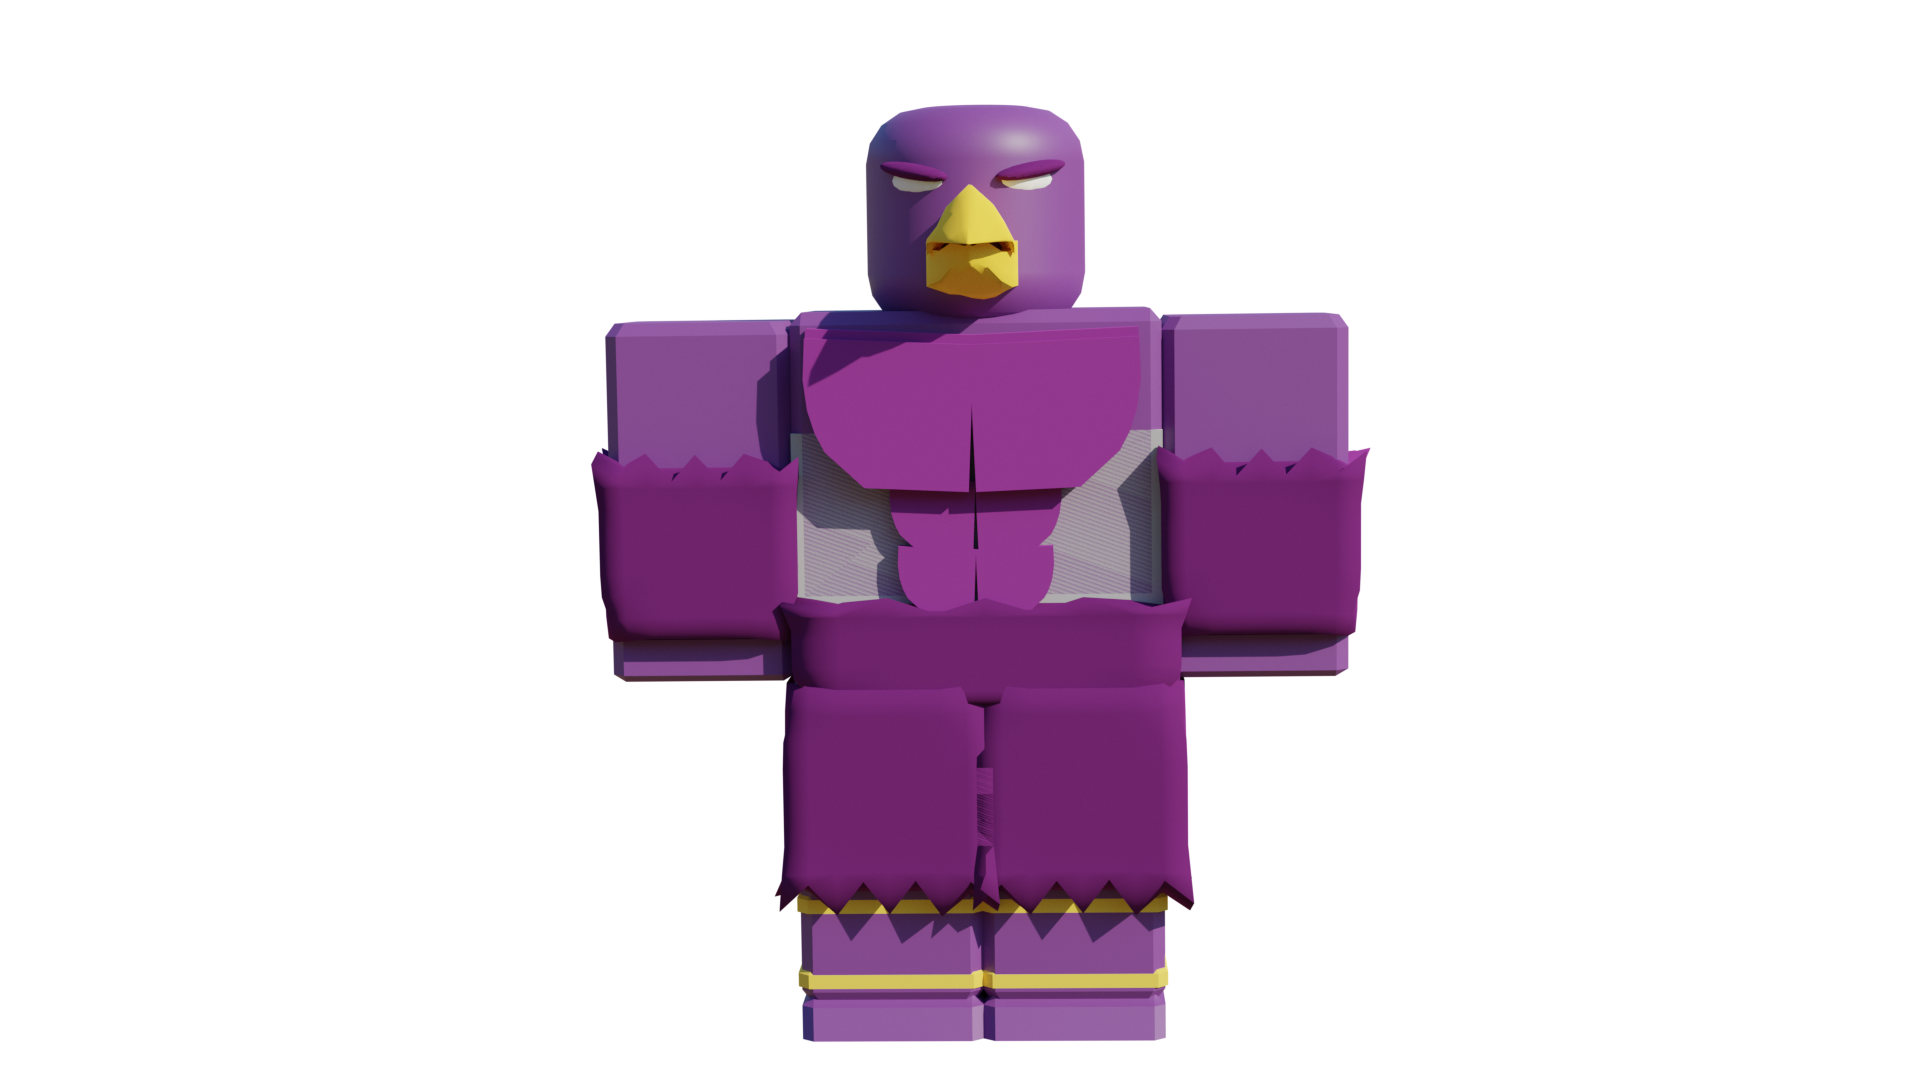 Magician S Red Requiem Jojo Blox Wiki Fandom Tips and tricks with all stands part 1 yba. red requiem jojo blox wiki fandom